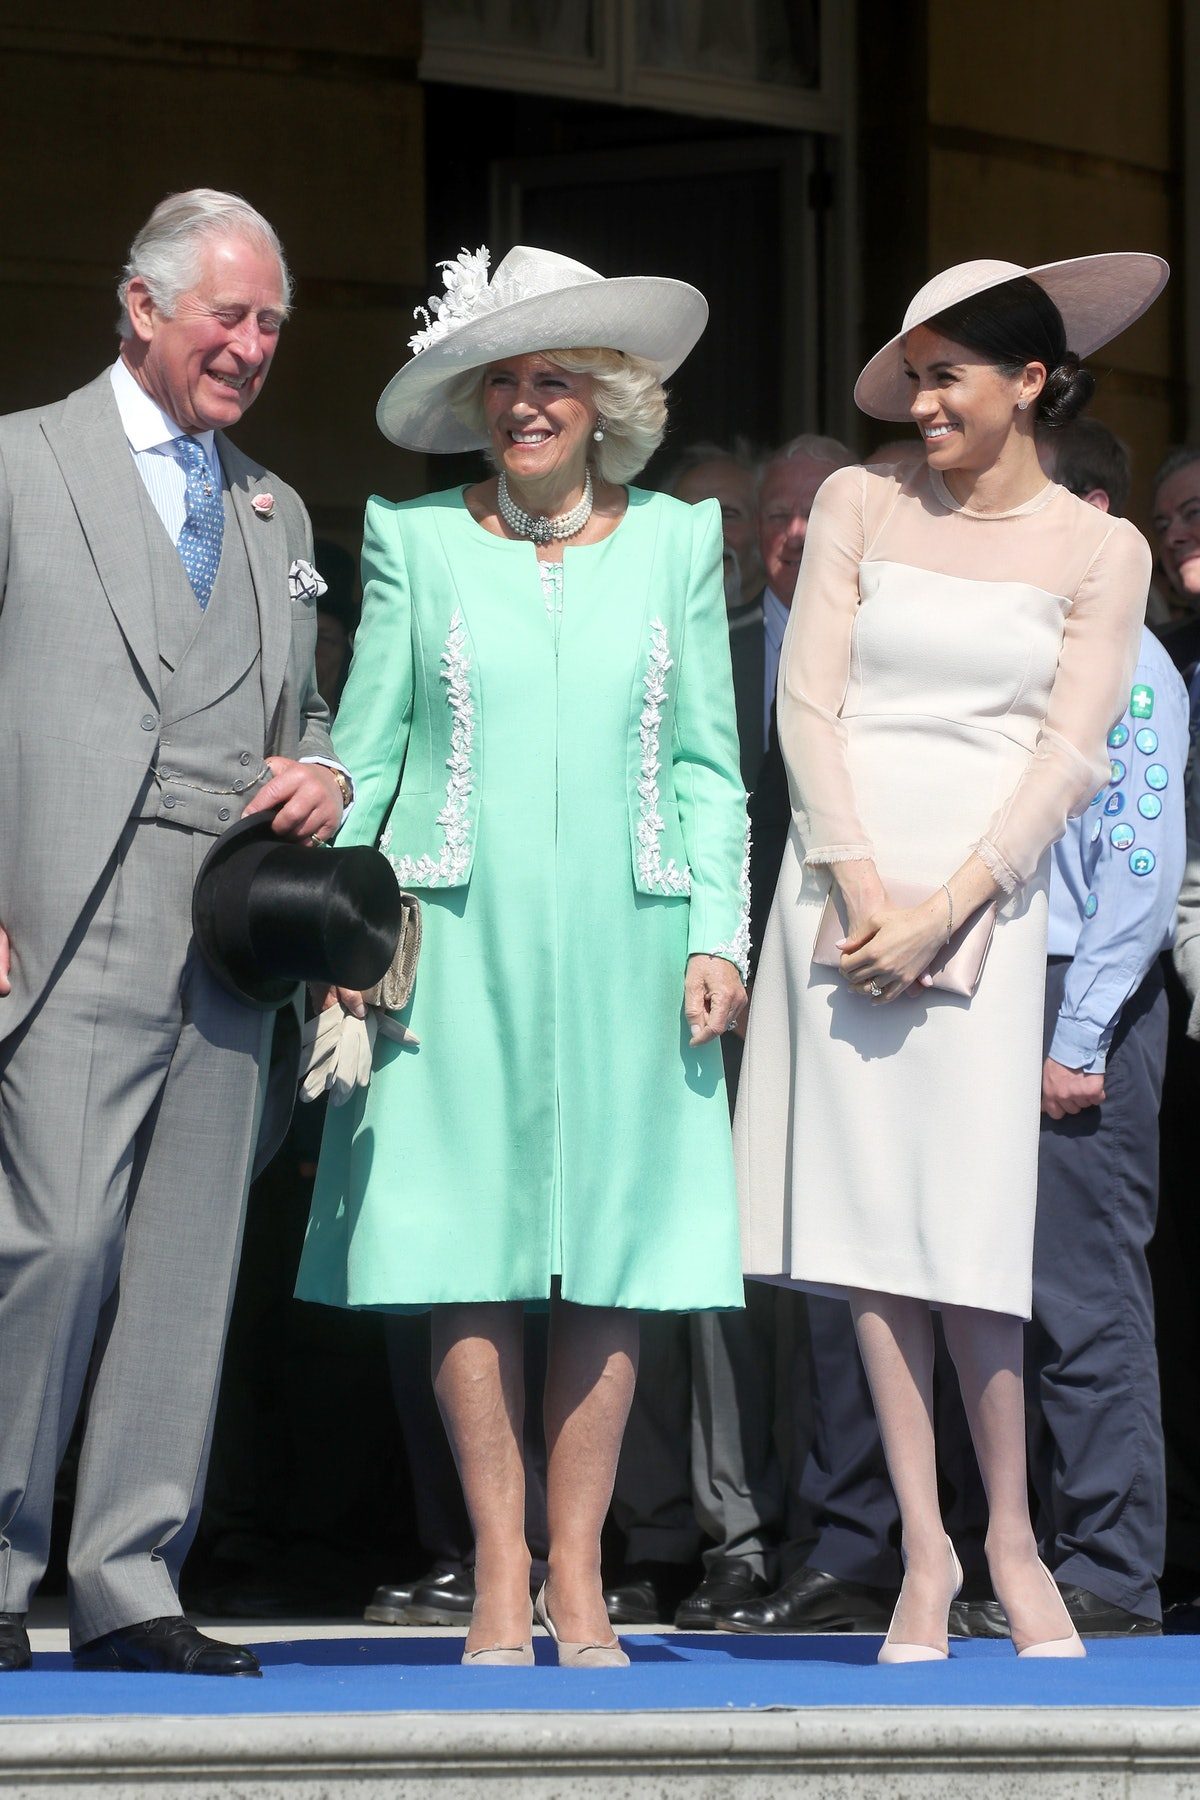 Meghan Markle Attends The Prince Of Wales' 70th Birthday Patronage Celebration